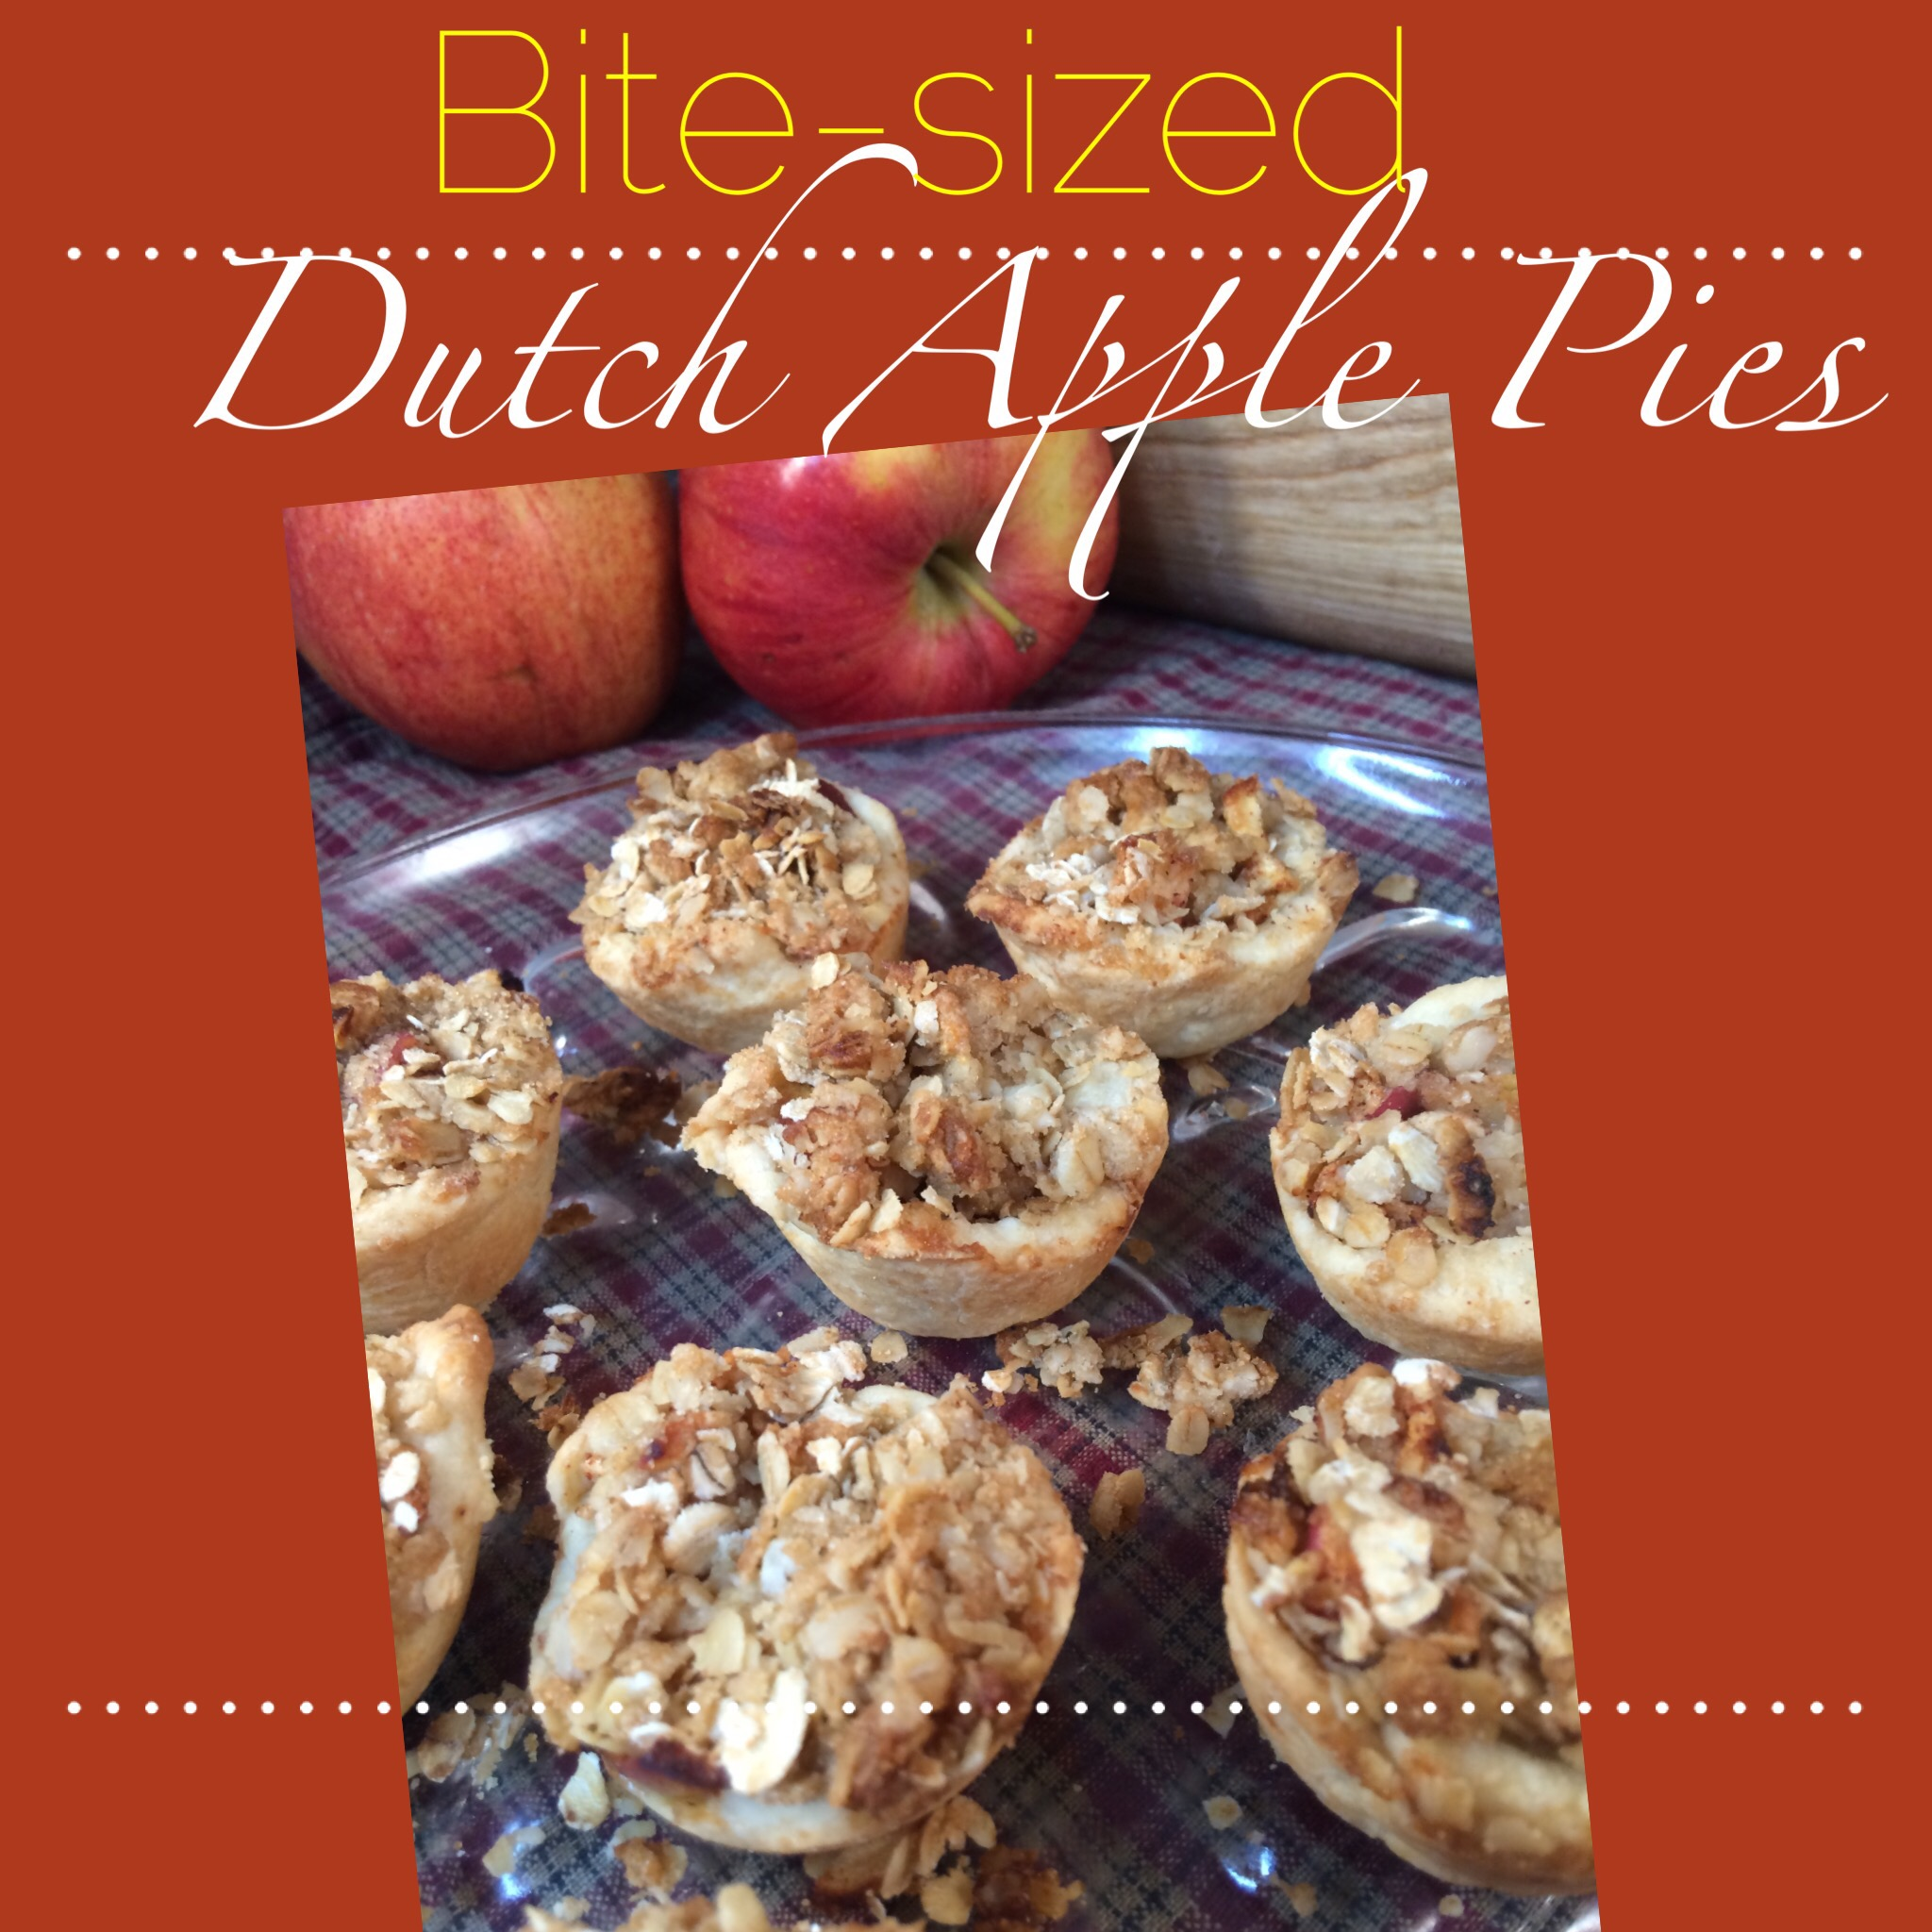 Life Made Bite-Sized: Bite-sized Dutch Apple Pies